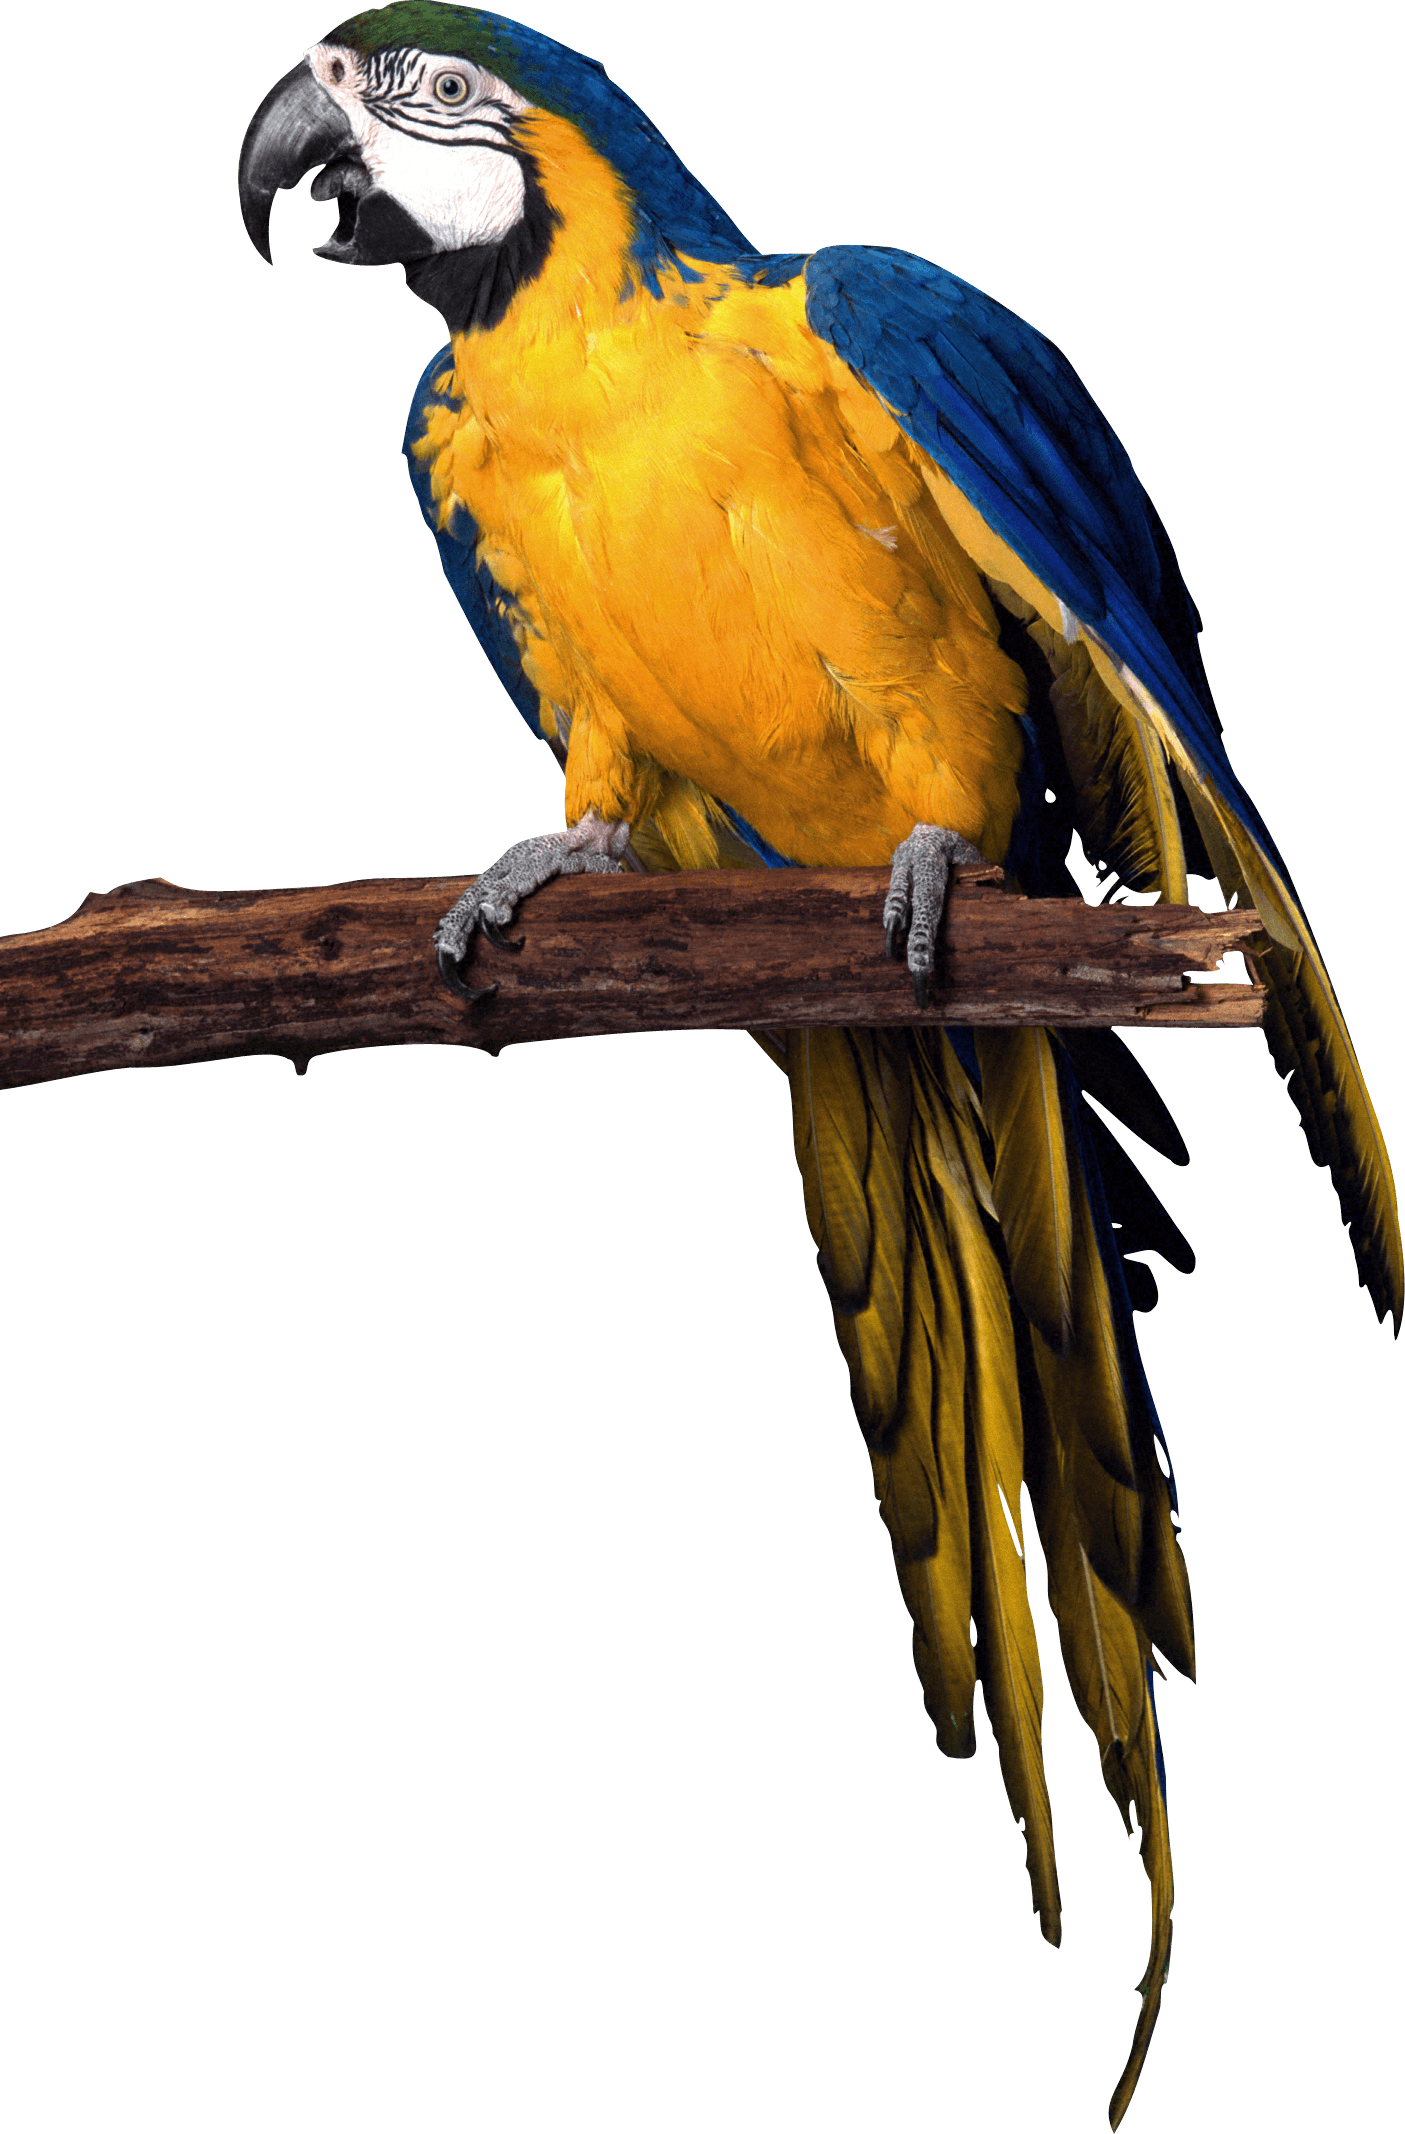 yellow blue pirate Parrot PNG Image